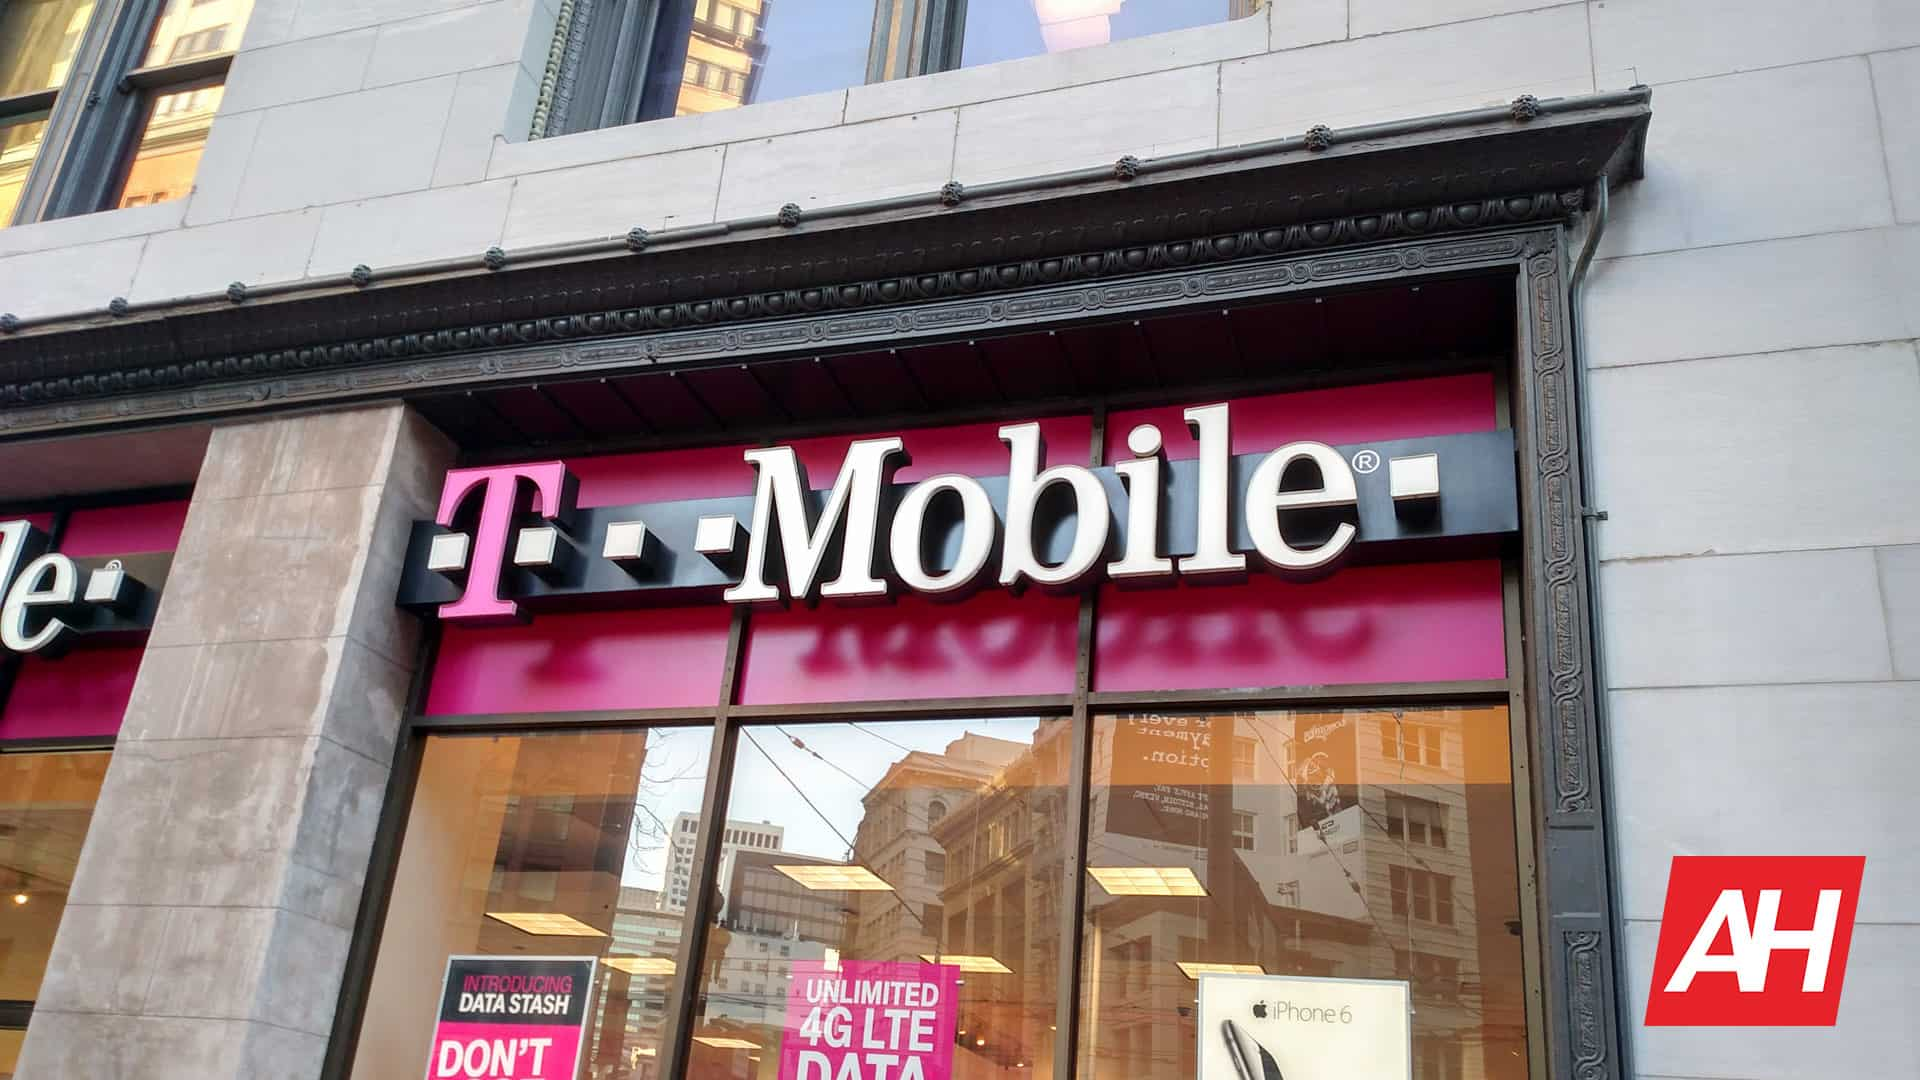 T Mobile Logo Oct 31 18 AH